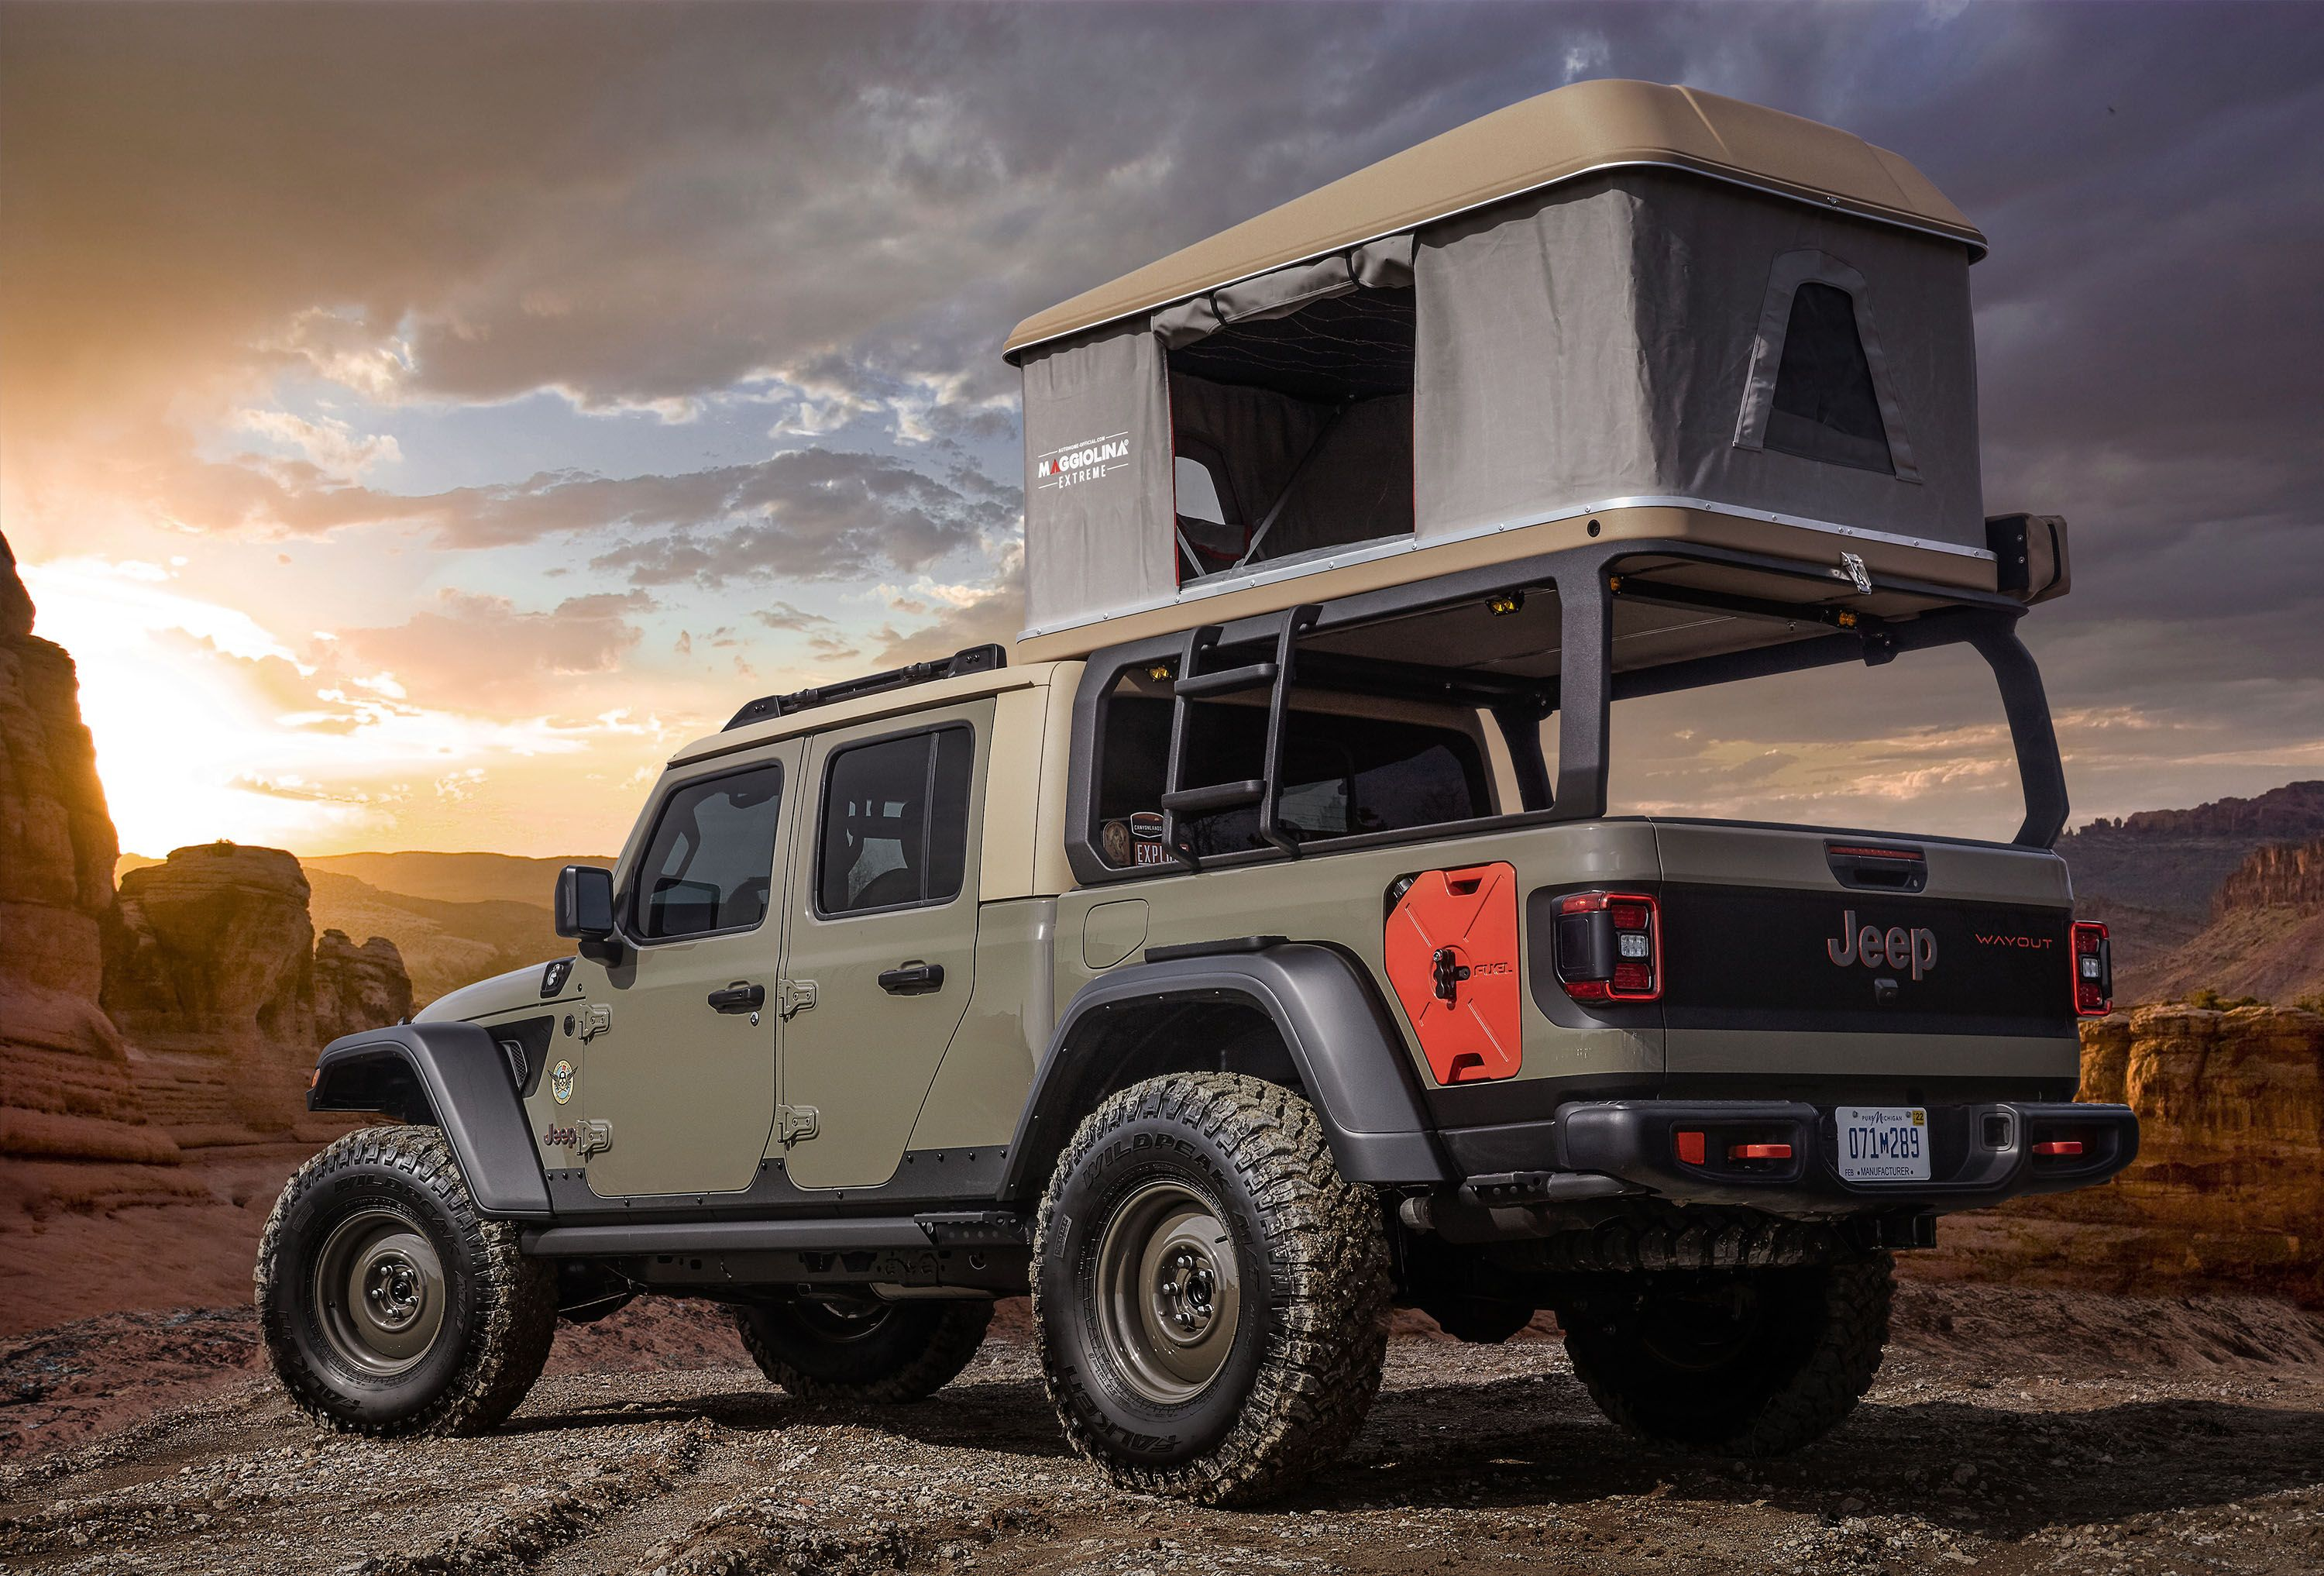 The Jeep Wayout Concept Sleeps Two and Takes Overlanding to a New Level